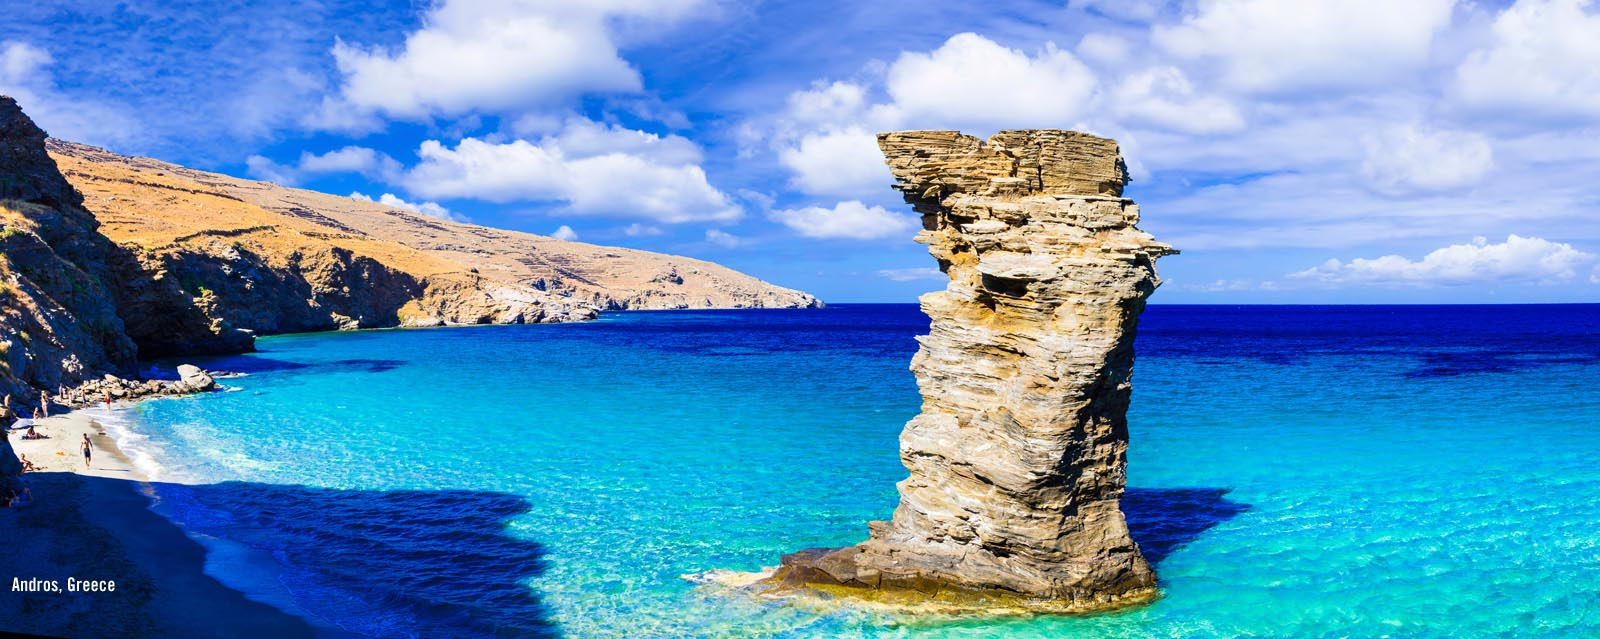 Larger image - Andros Island Beach Greece